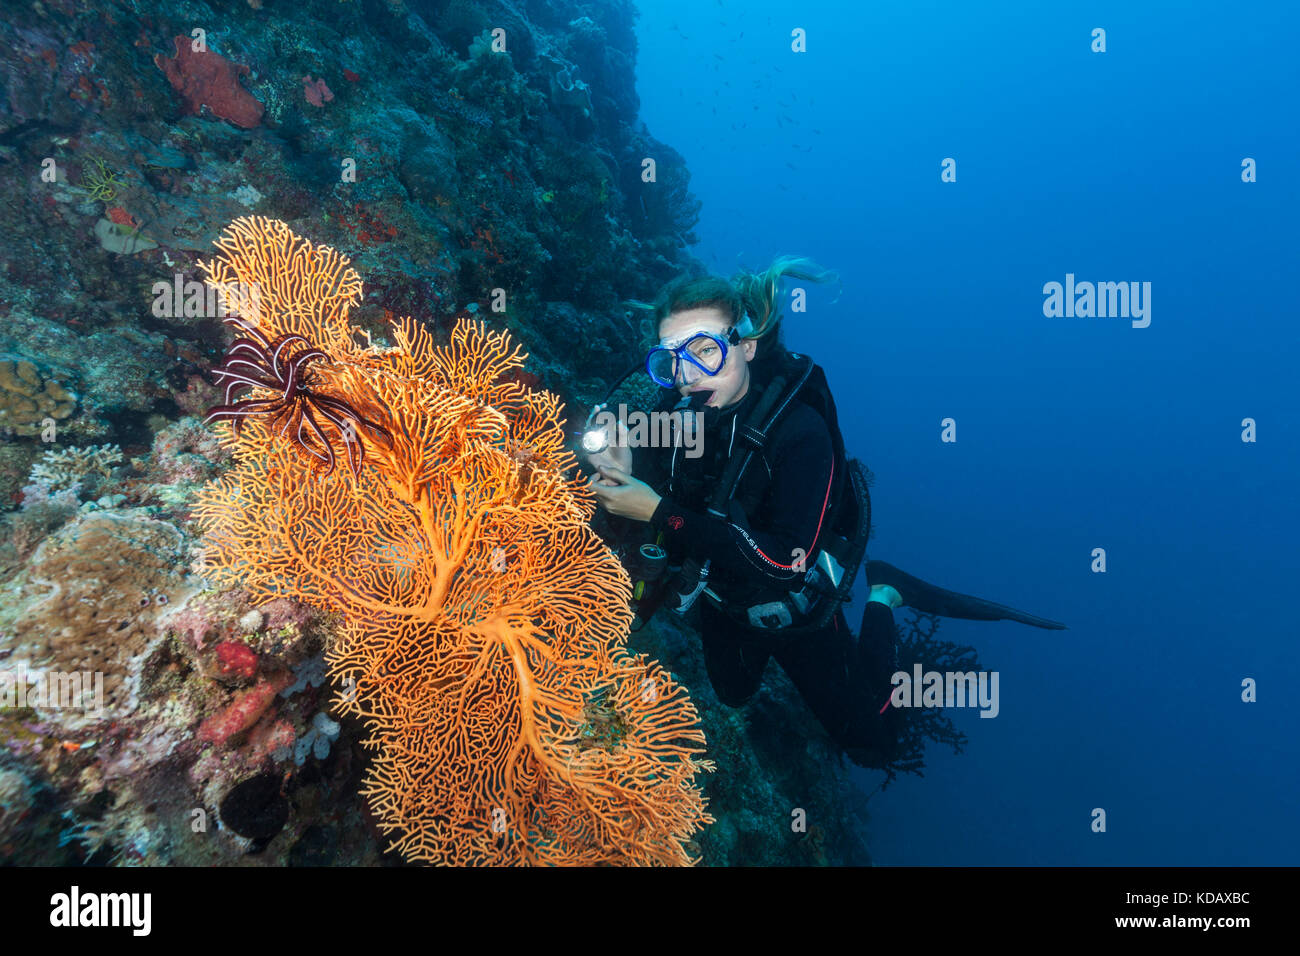 Diver looking at colourfal sea fans at St Crispins Reef, Great Barrier Reef Marine Park, Port Douglas, Queensland, - Stock Image